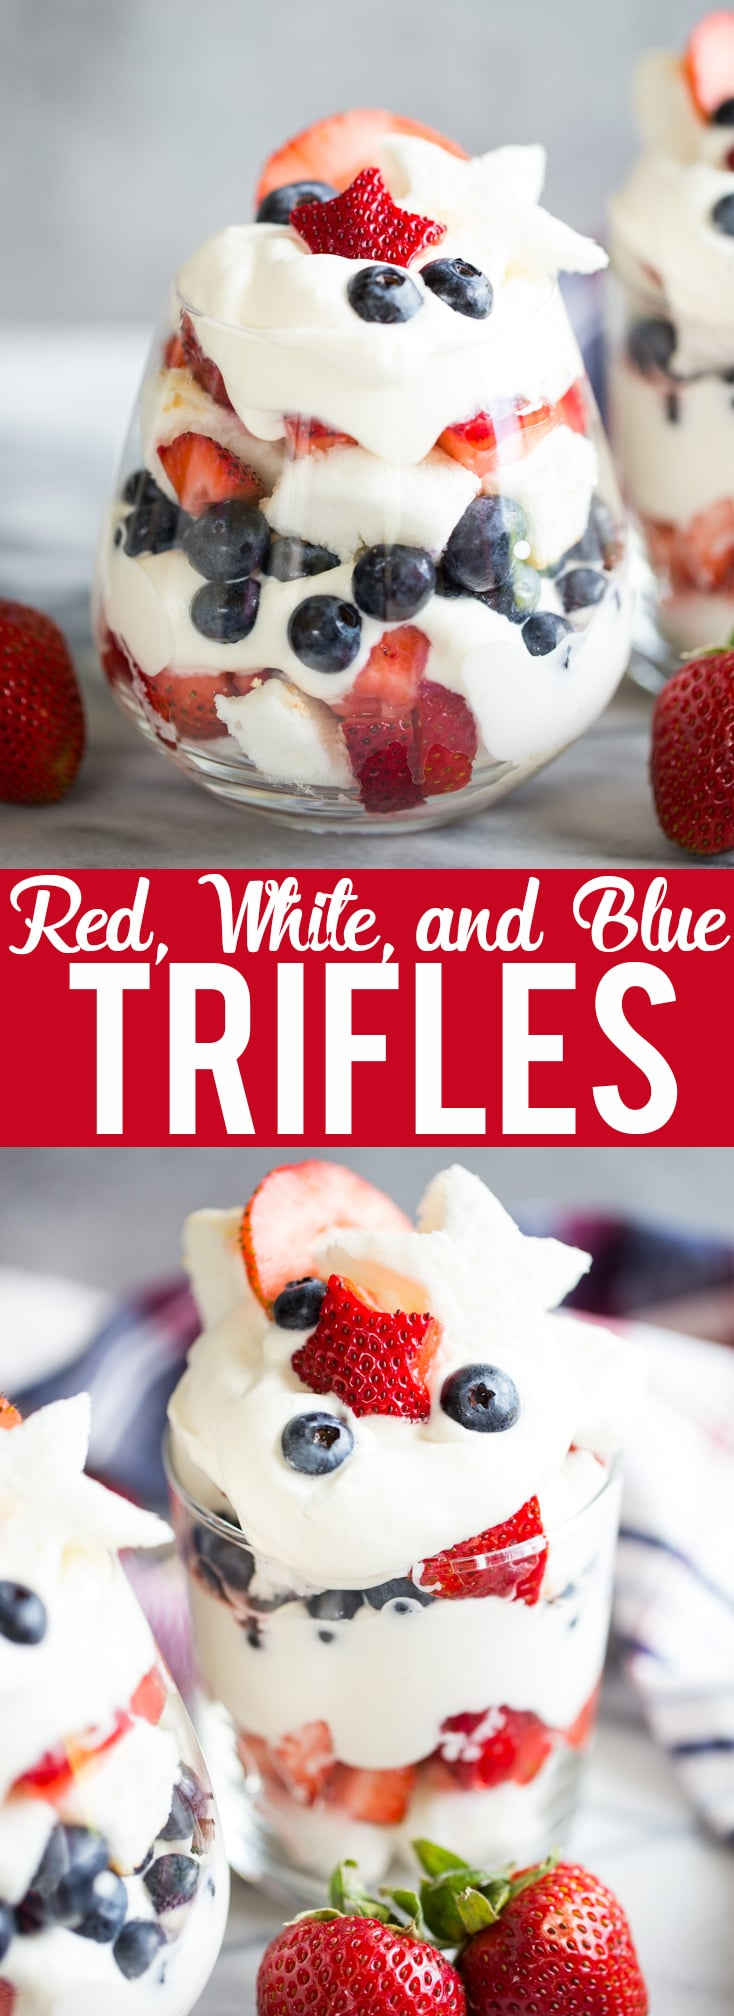 These Red, White, and Blue Trifles are an easy and delicious dessert for Fourth of July, Memorial Day, Labor Day or any Summer BBQ!   Red white and blue dessert   fourth of July dessert   Labor day dessert   Summer Dessert   Dessert Recipe for BBQ   4th of July